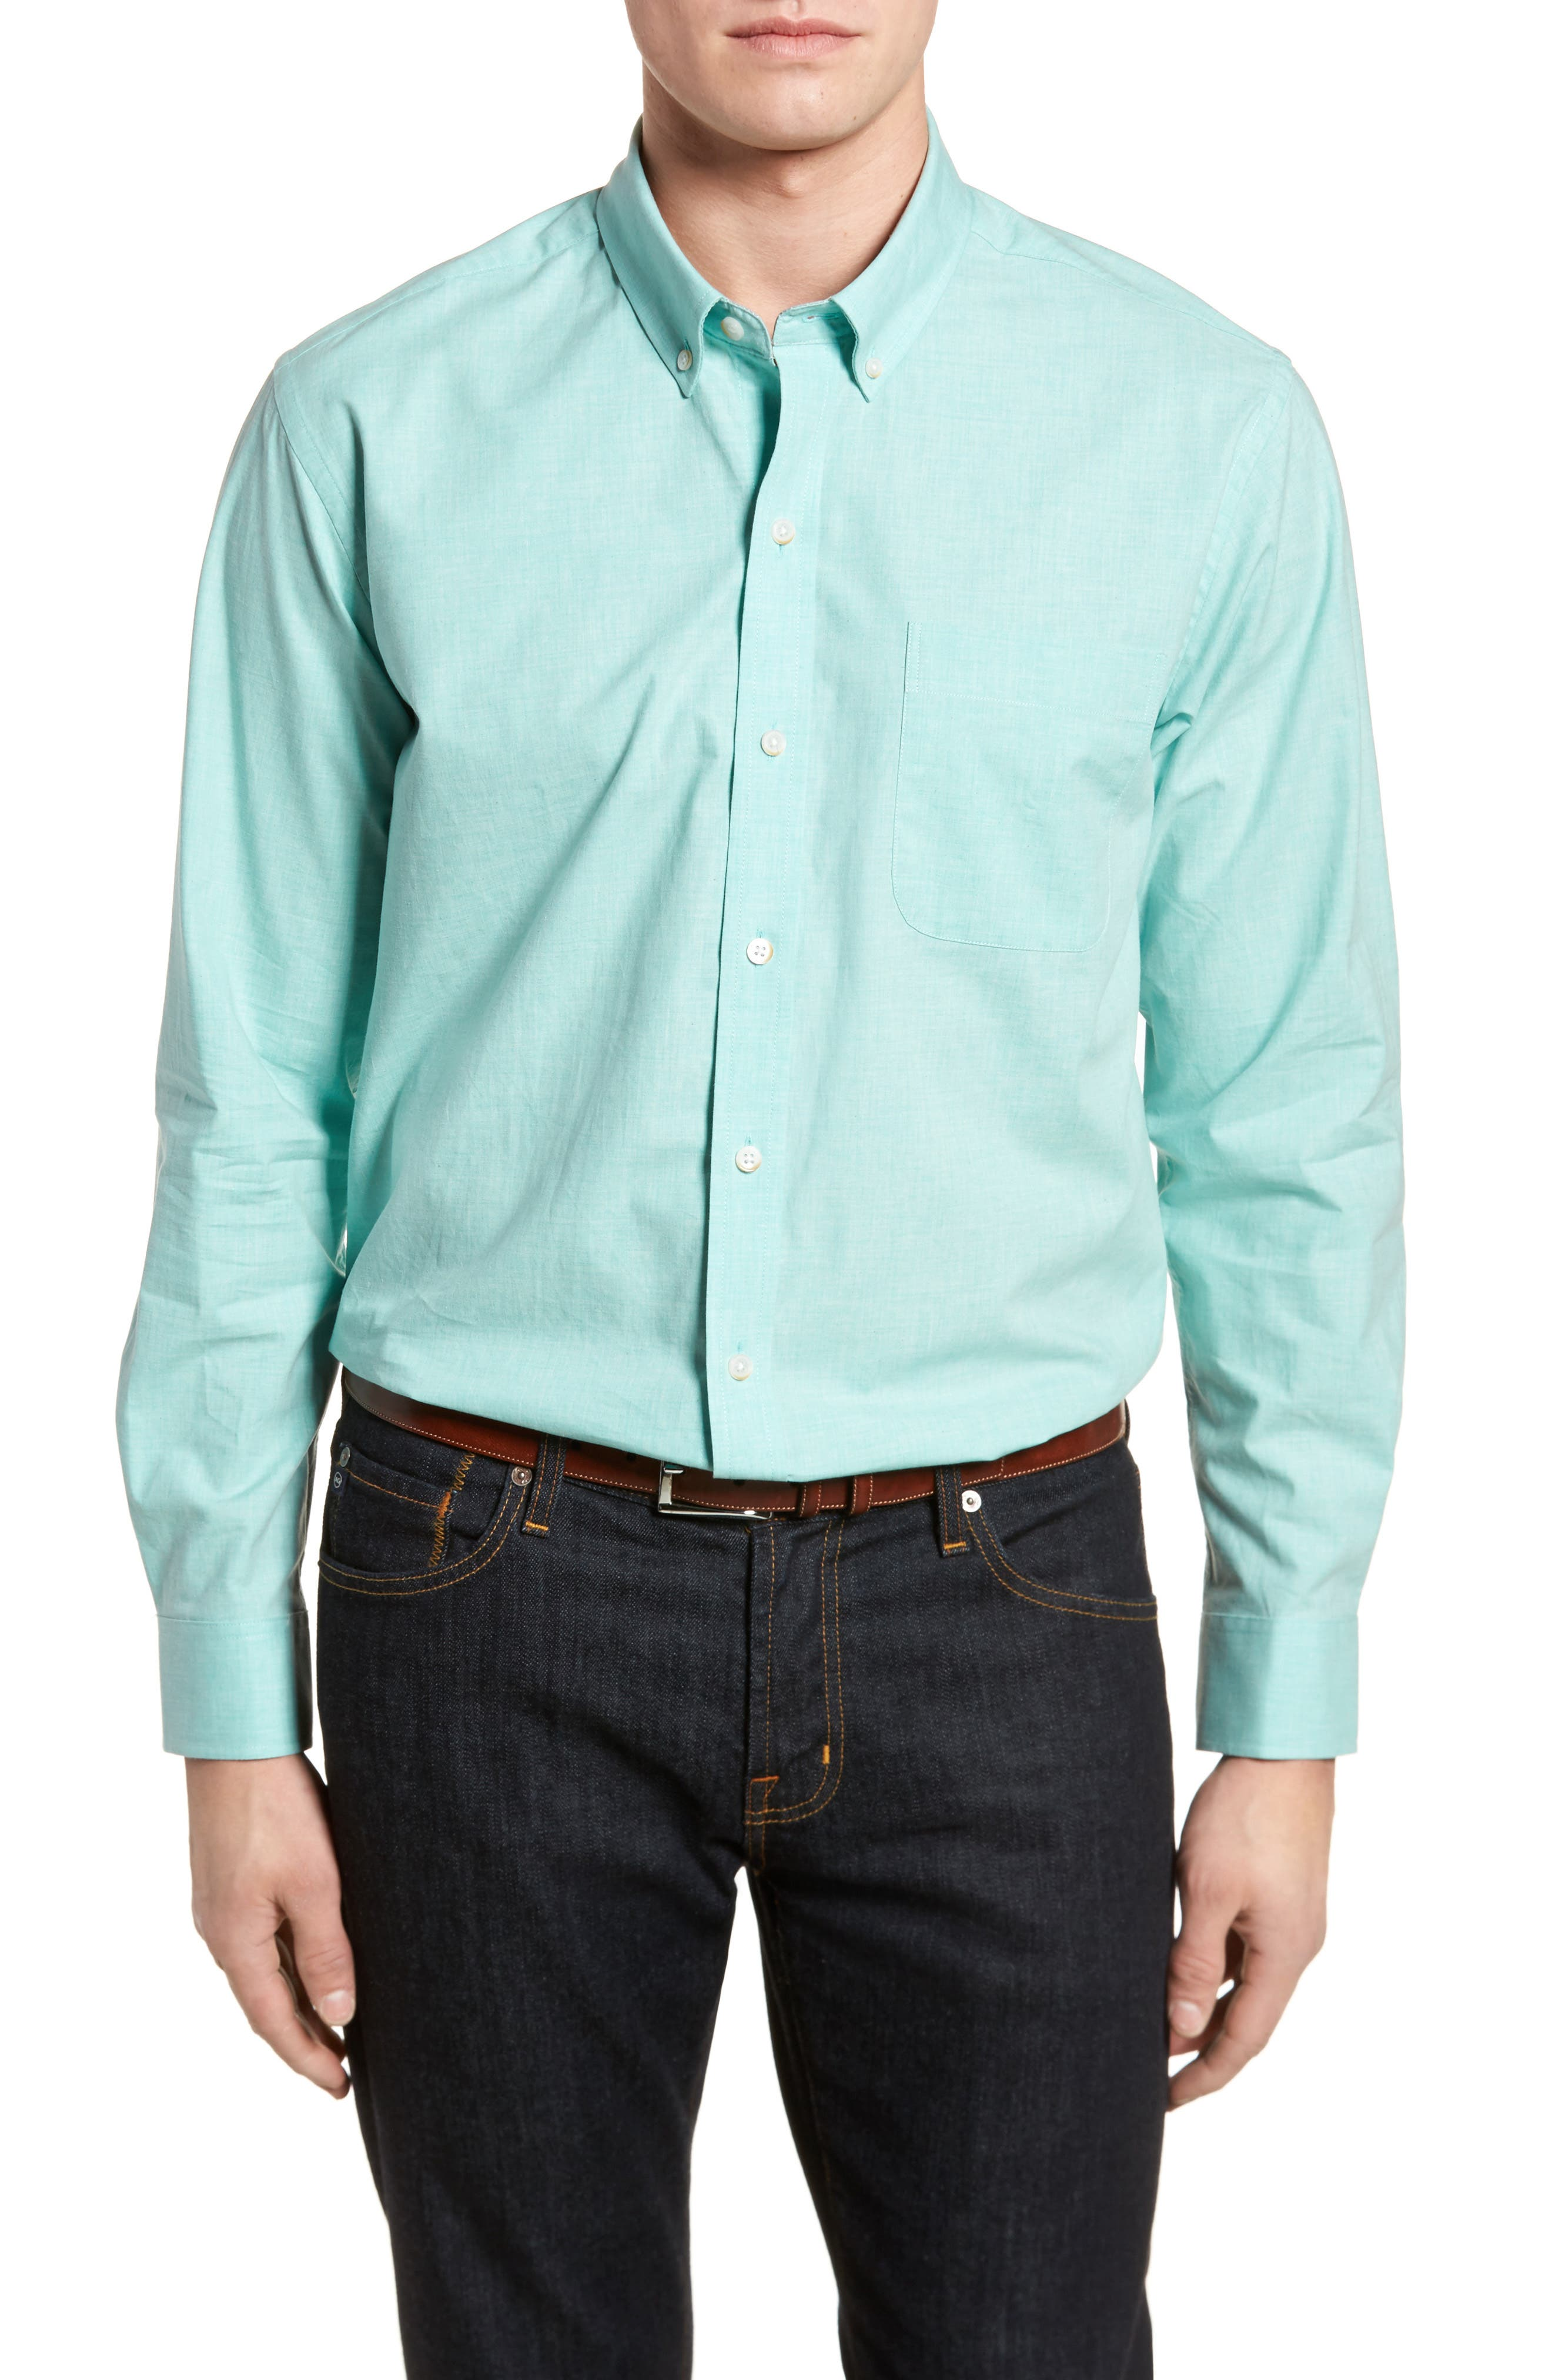 Alternate Image 1 Selected - Cutter & Buck Heather Classic Fit No-Iron Sport Shirt